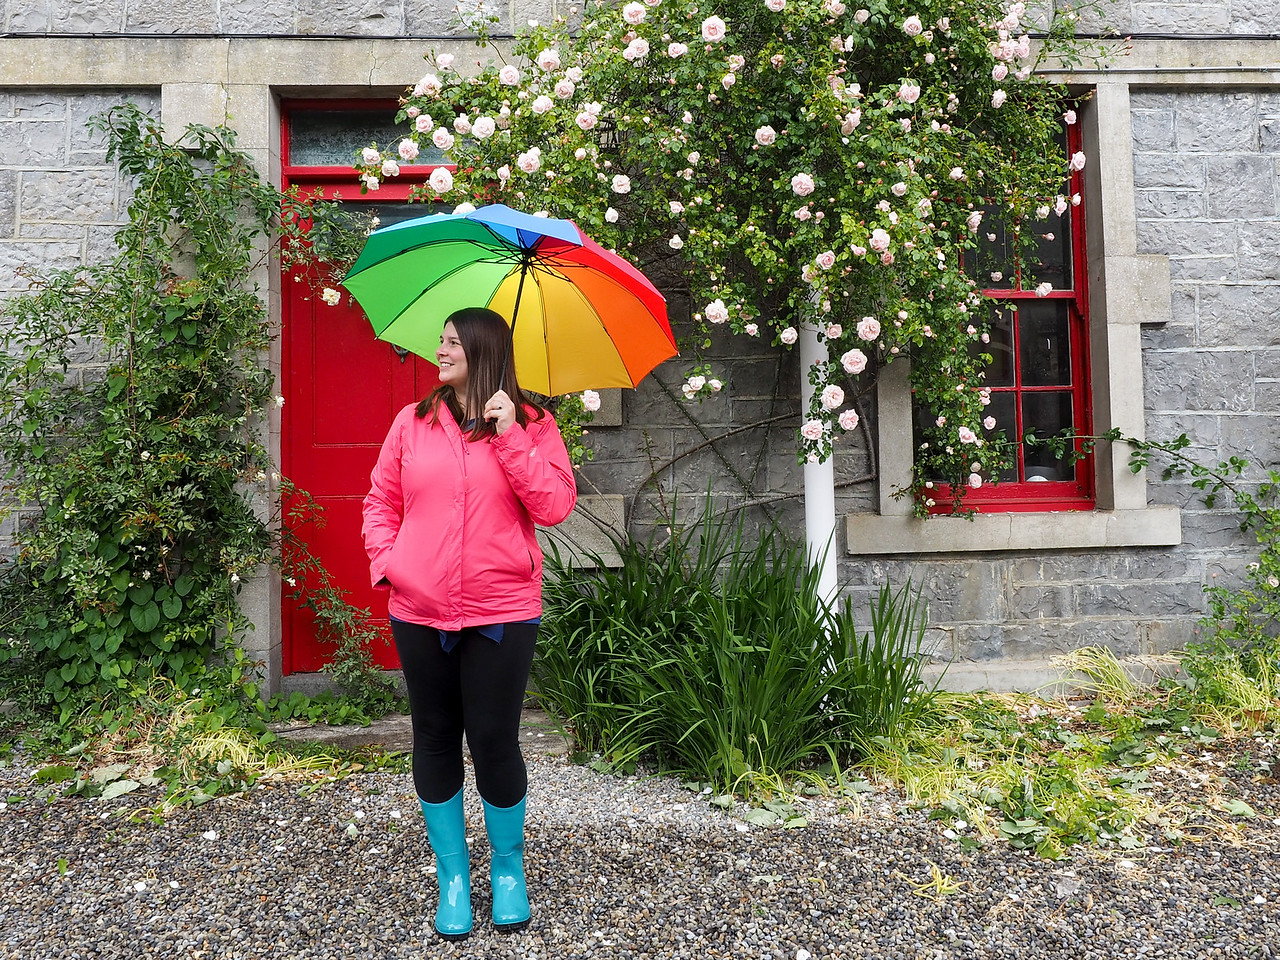 Amanda in the rain in Ireland